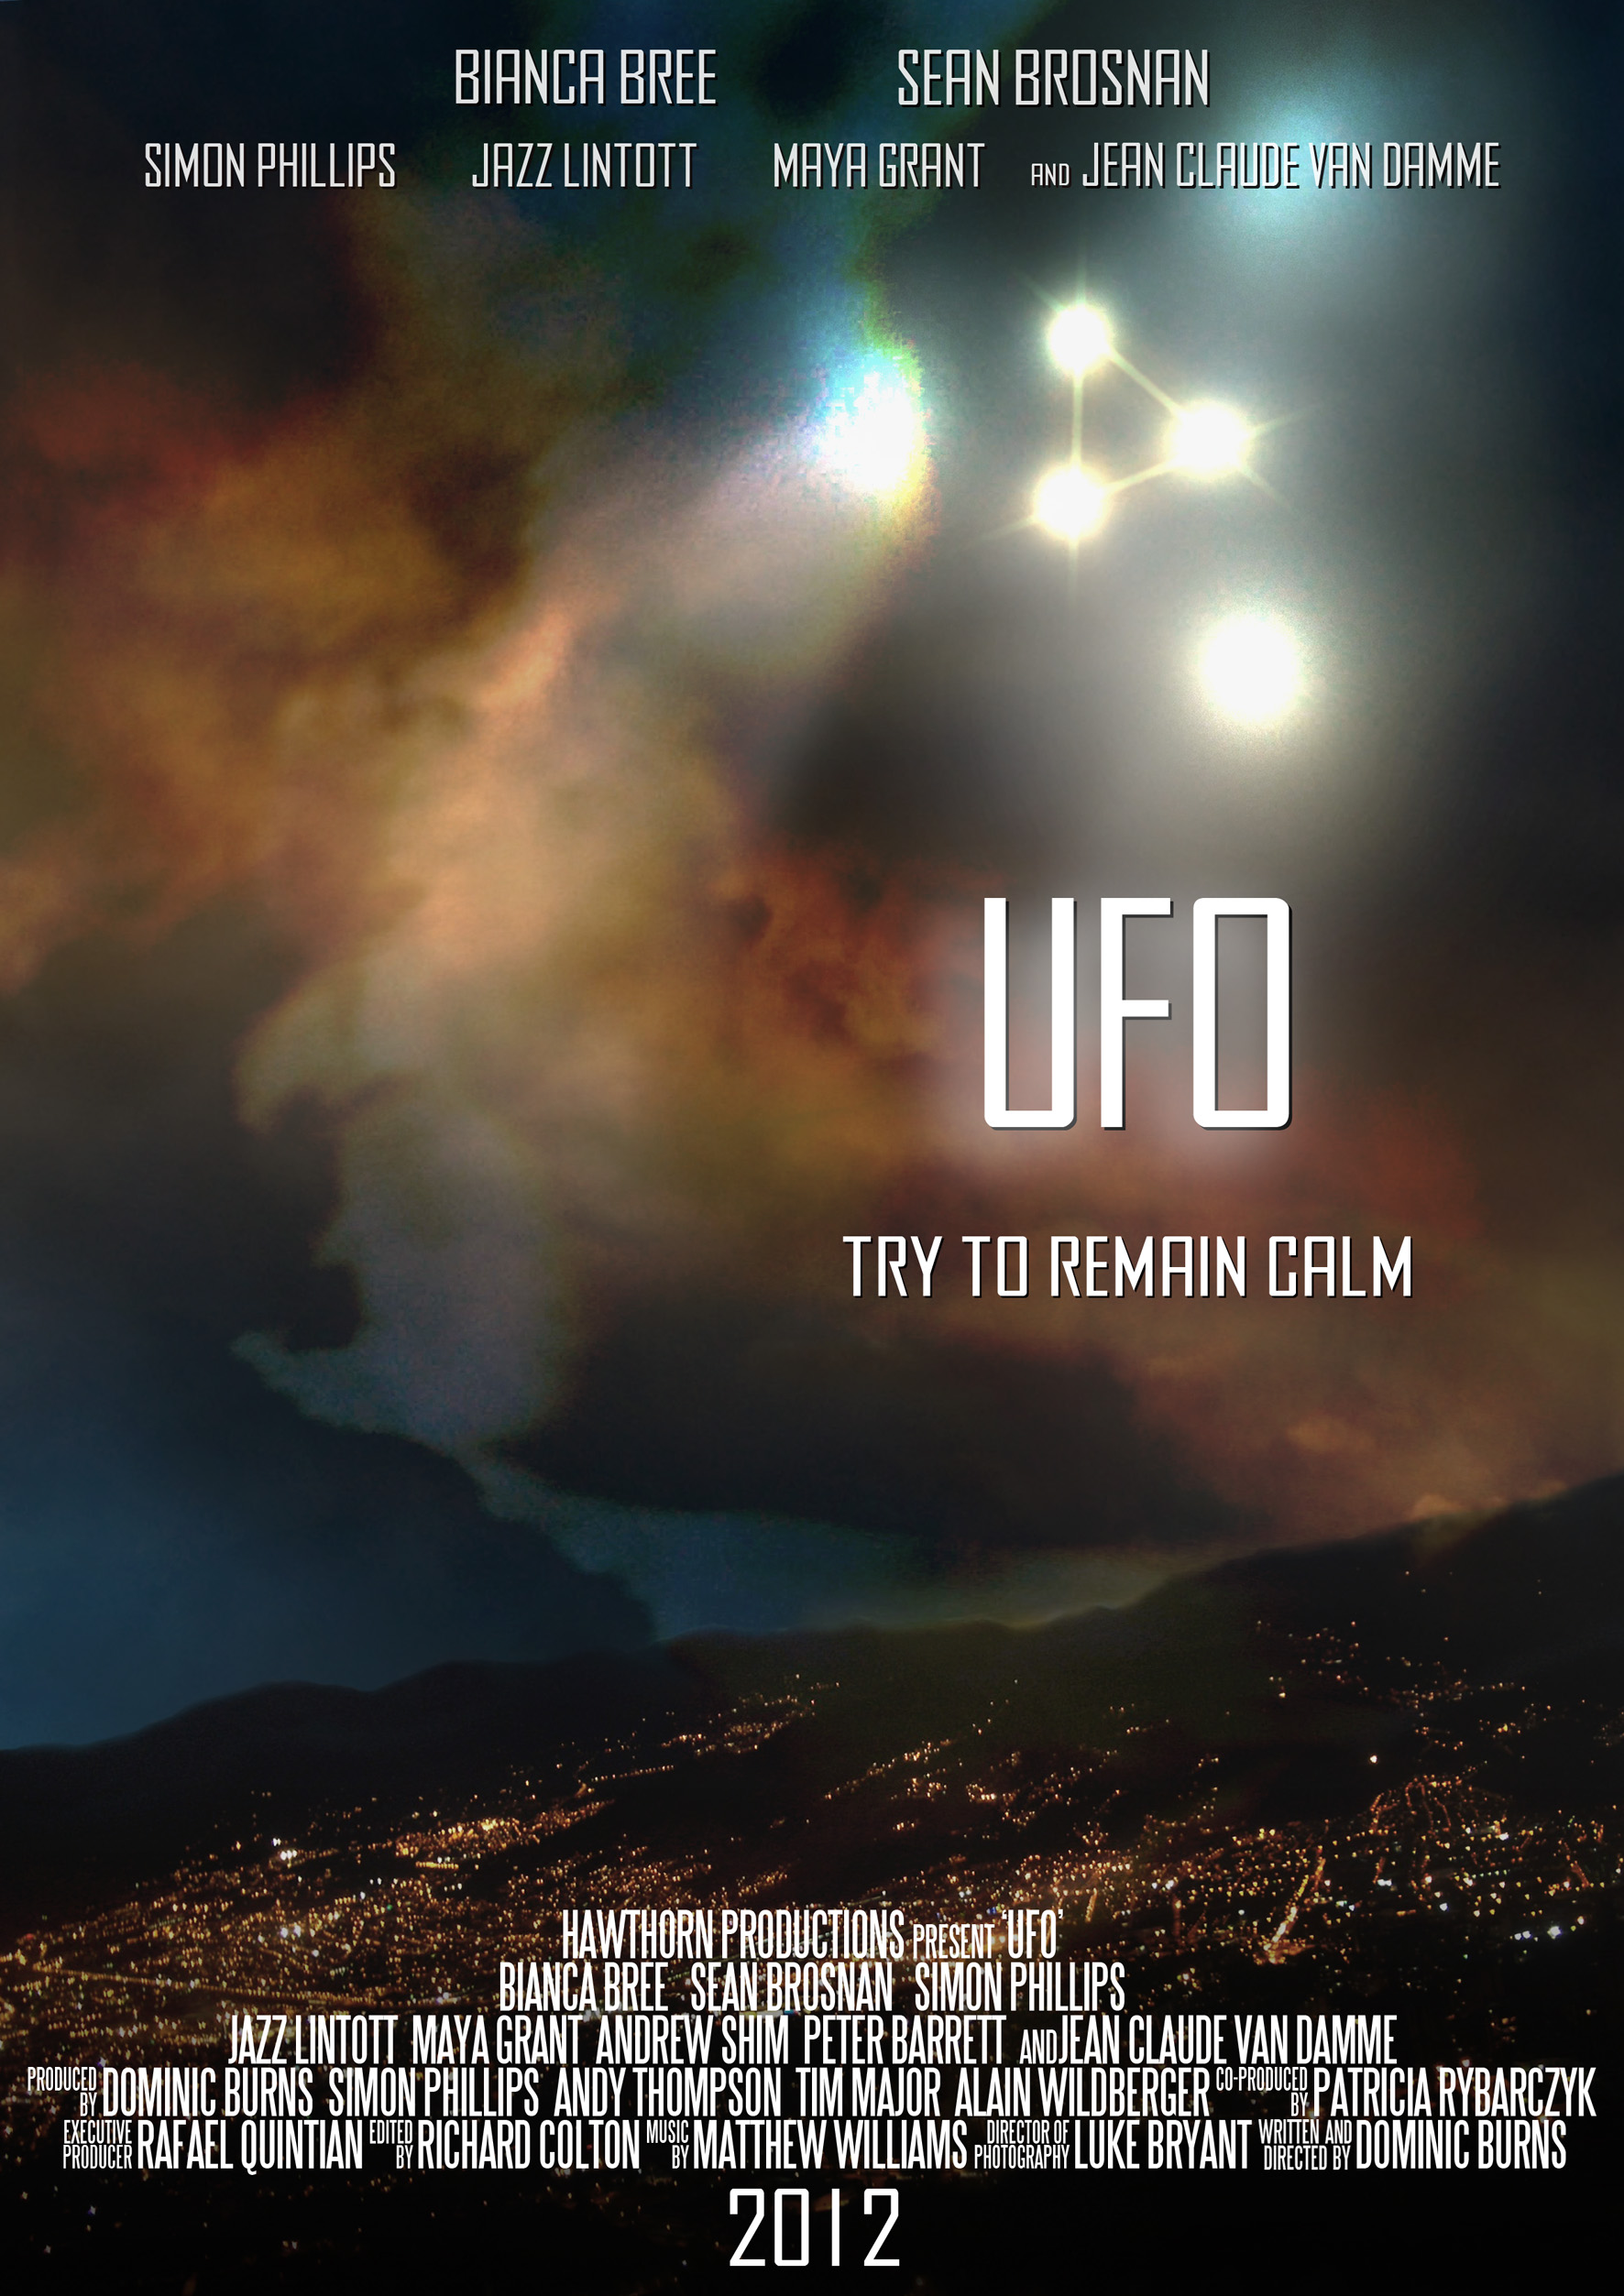 Exclusive Casting News, Synopsis & First Look Poster for UFO